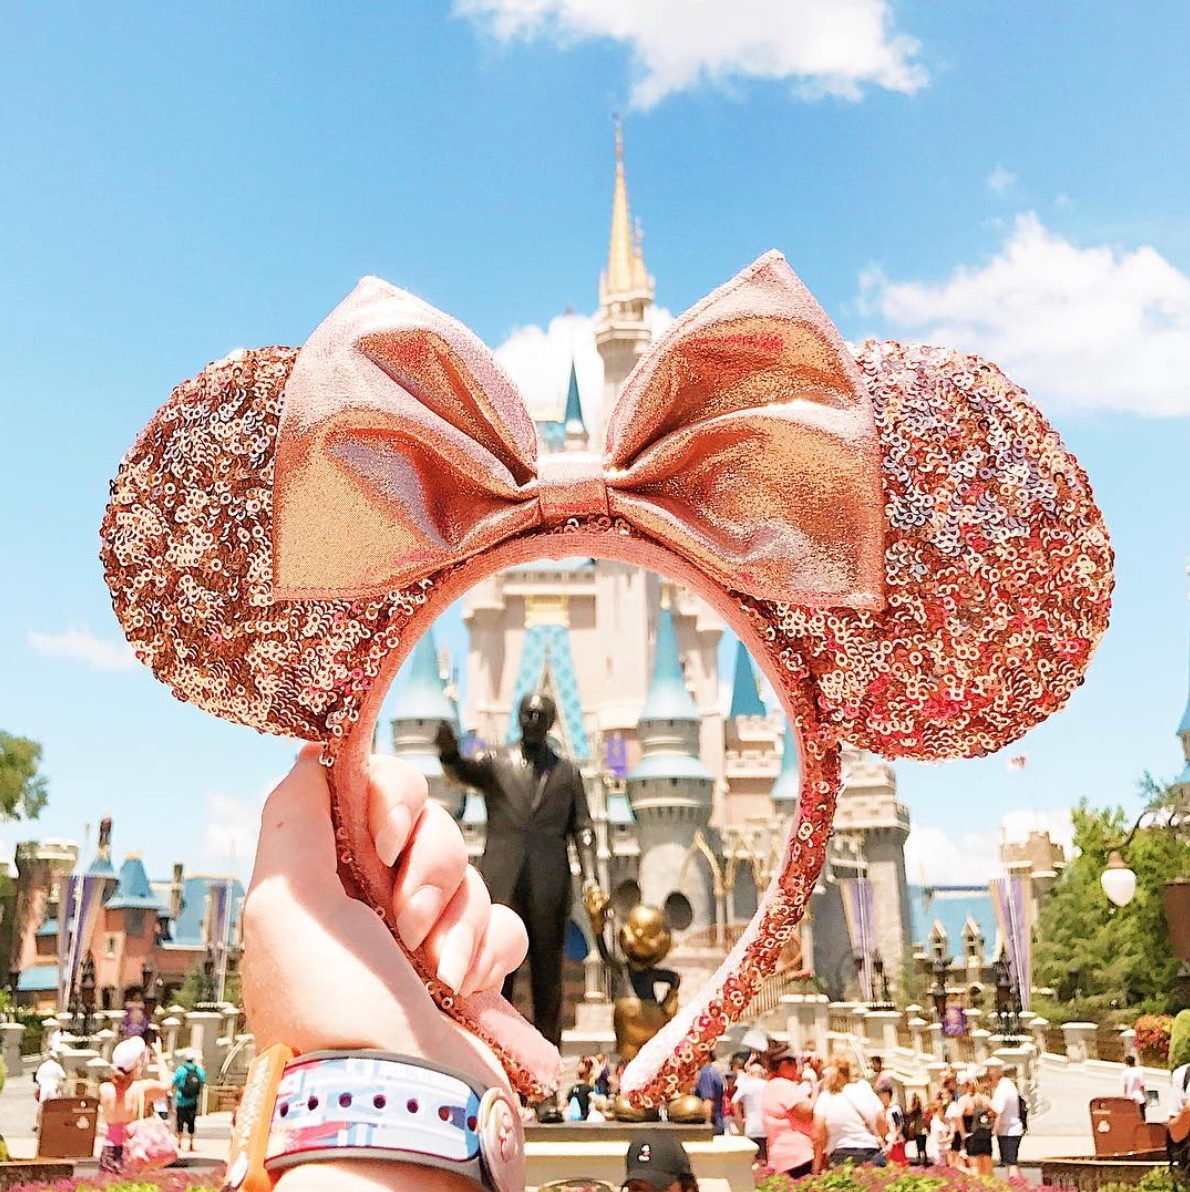 Disney Just Released Rose Gold Minnie Ears, and They're Giving Us All the Good Feels